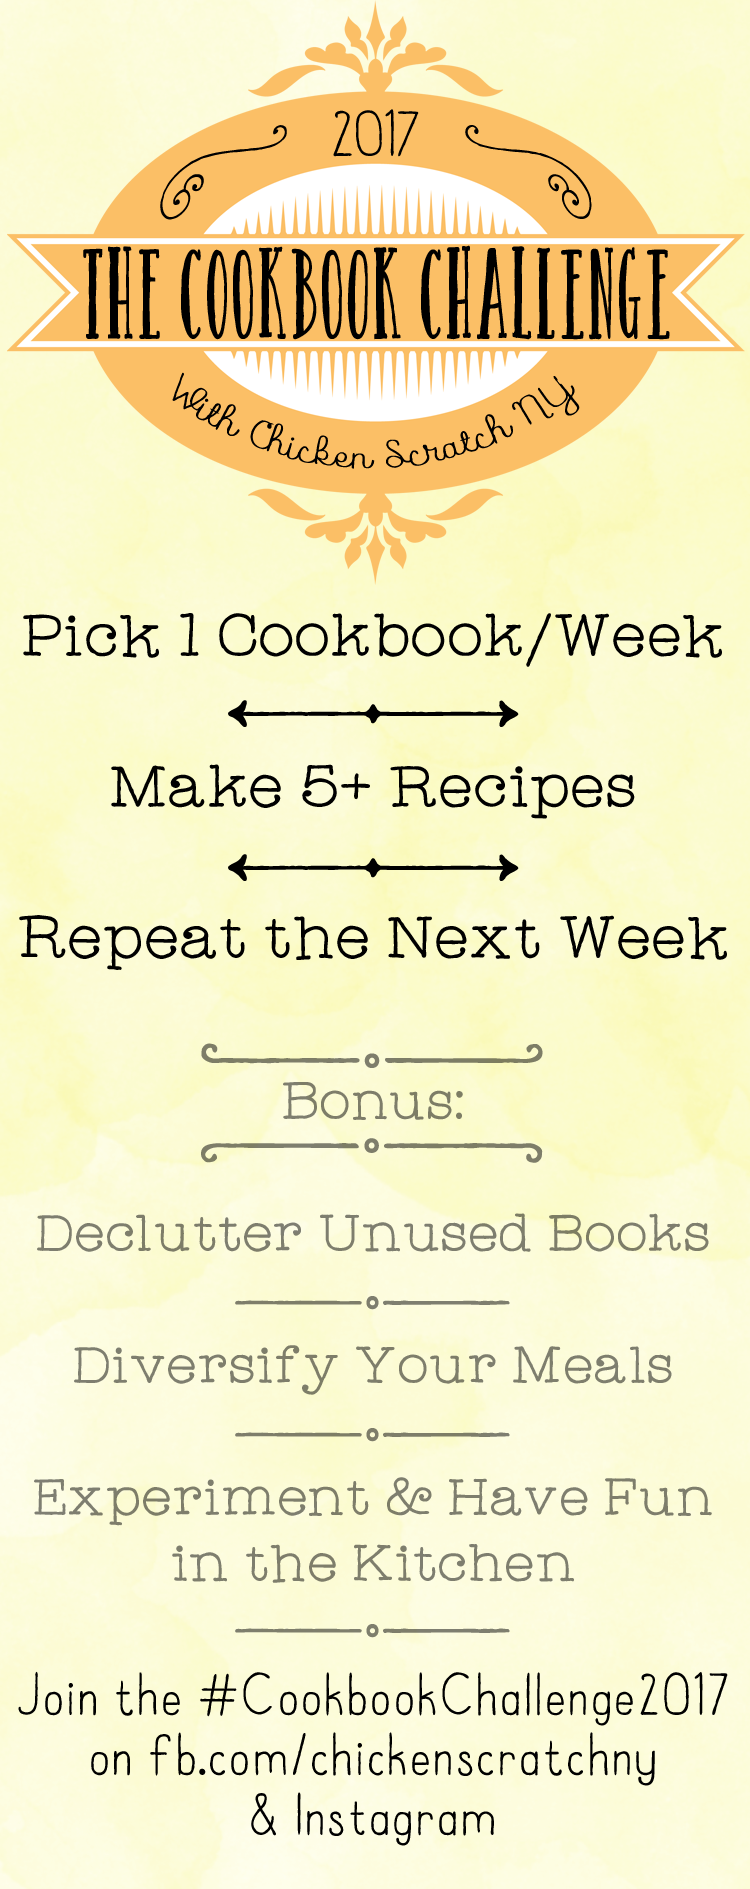 Challenge yourself to sctually USE your cookbook collection with the 2017 Cookbook Challenge